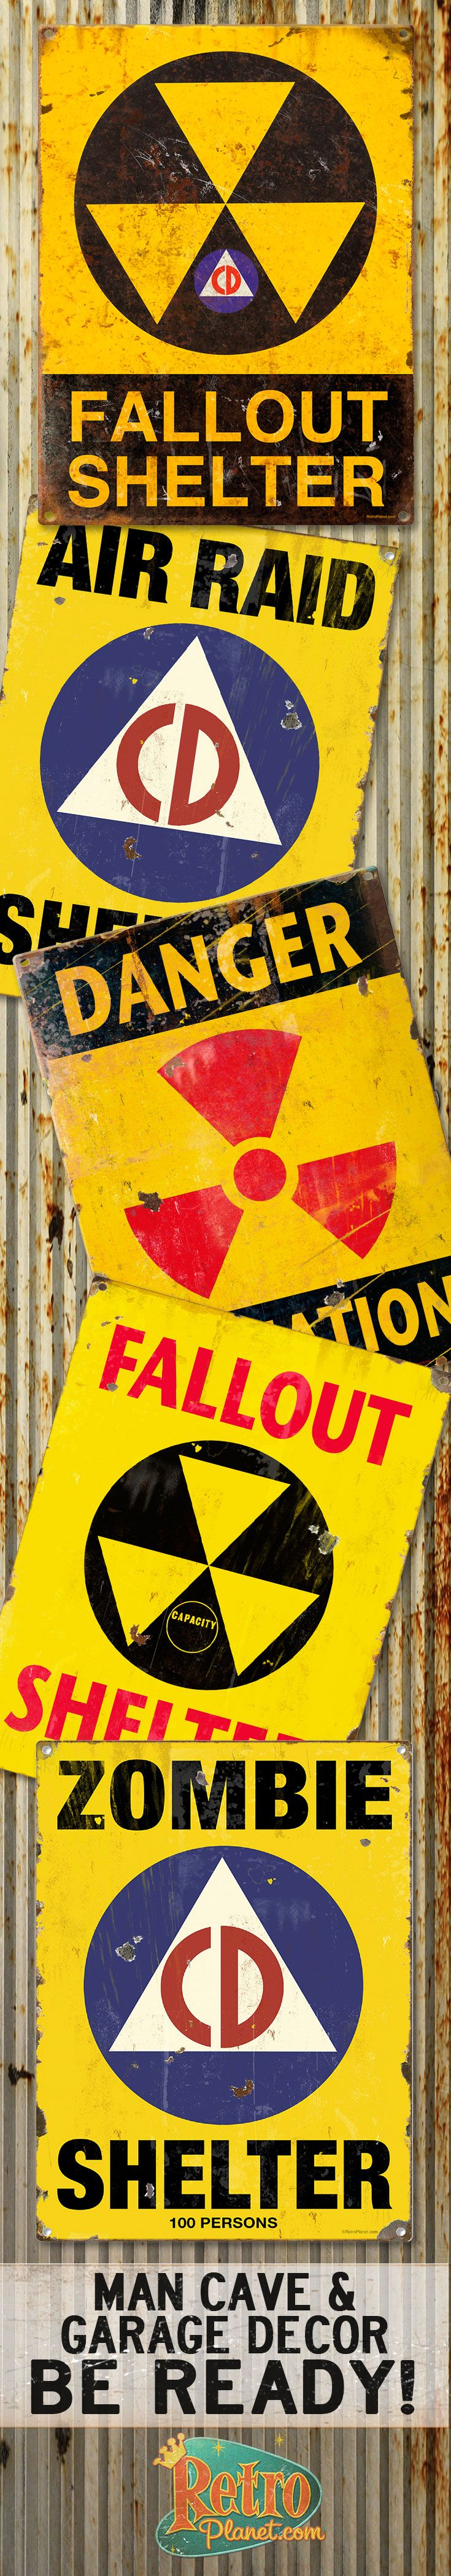 Hearkening back to the Atomic Age when fallout  & air raid shelters were all the rage, these signs work as nostalgic, Cold War wall decor or as gallows humor. Guaranteed to make an impact in a man cave, garage or a snarky kid's bedroom.